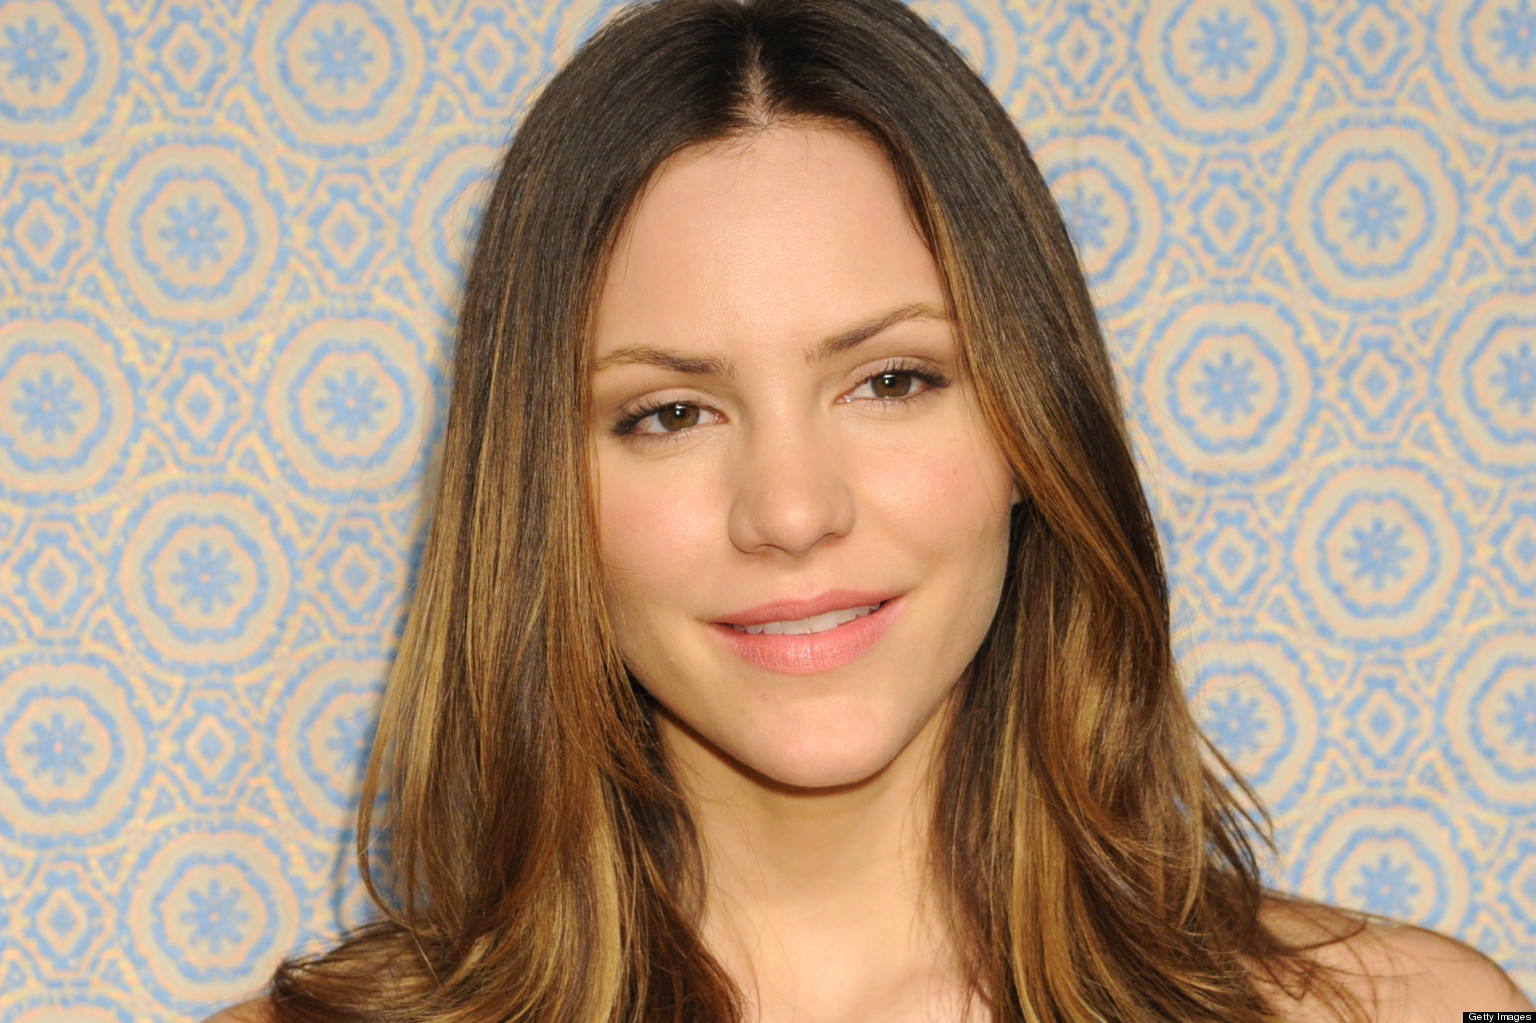 LOOK: Katharine McPhee Cut Off All Her Hair!